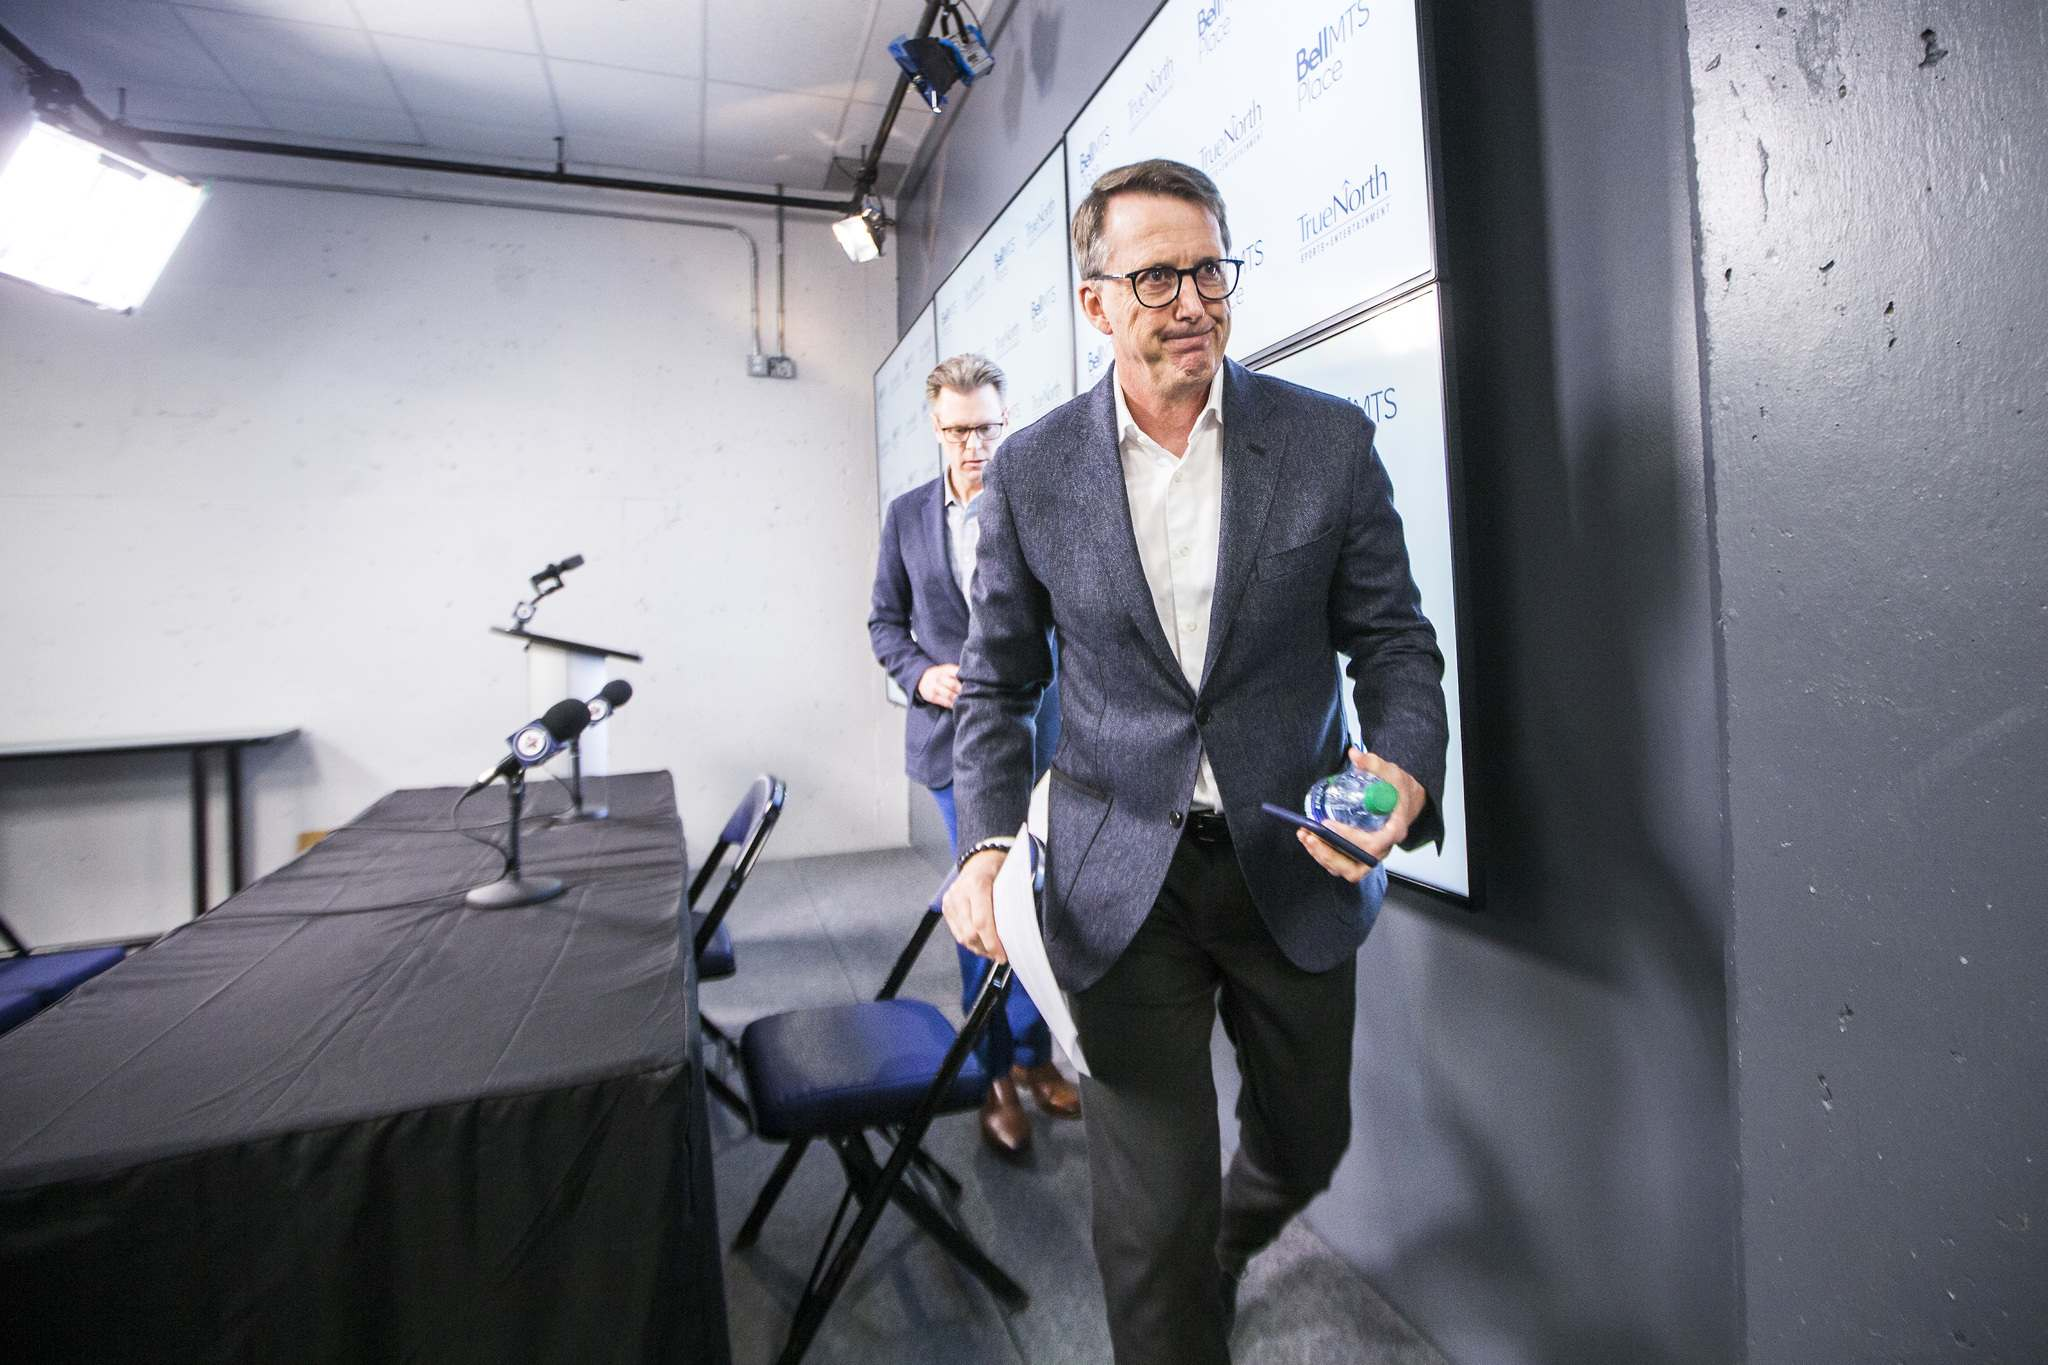 """Mark Chipman's """"they work when we work,"""" comment didn't come across as sympathetic to those on the lowest rungs of the organizational ladder. (Mikaela MacKenzie / Winnipeg Free Press files)</p>"""